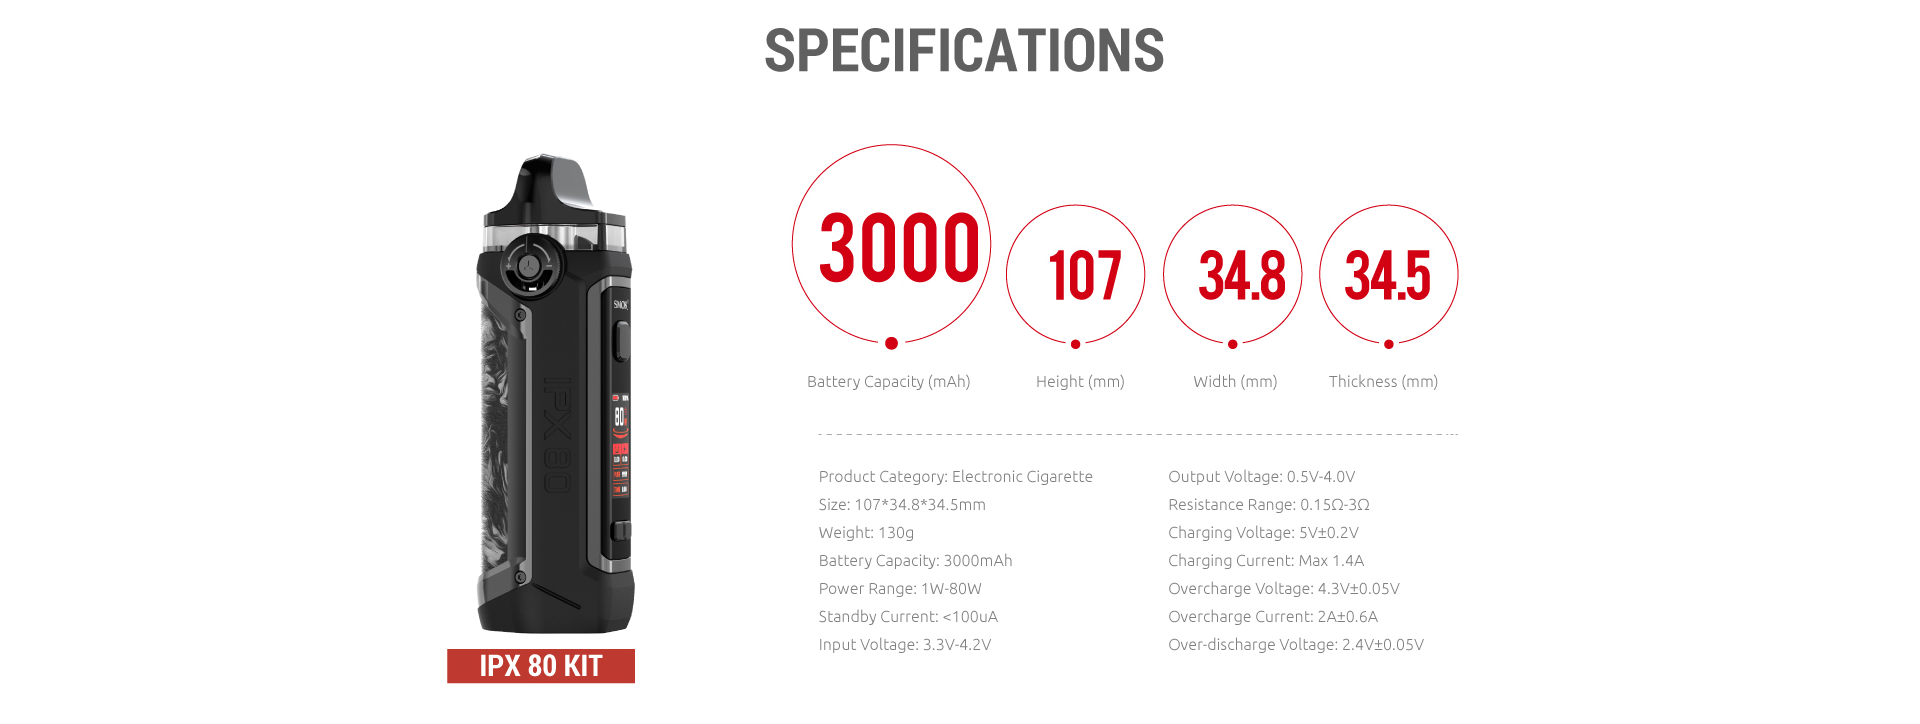 A black SMOK vape with text listing its specifications.